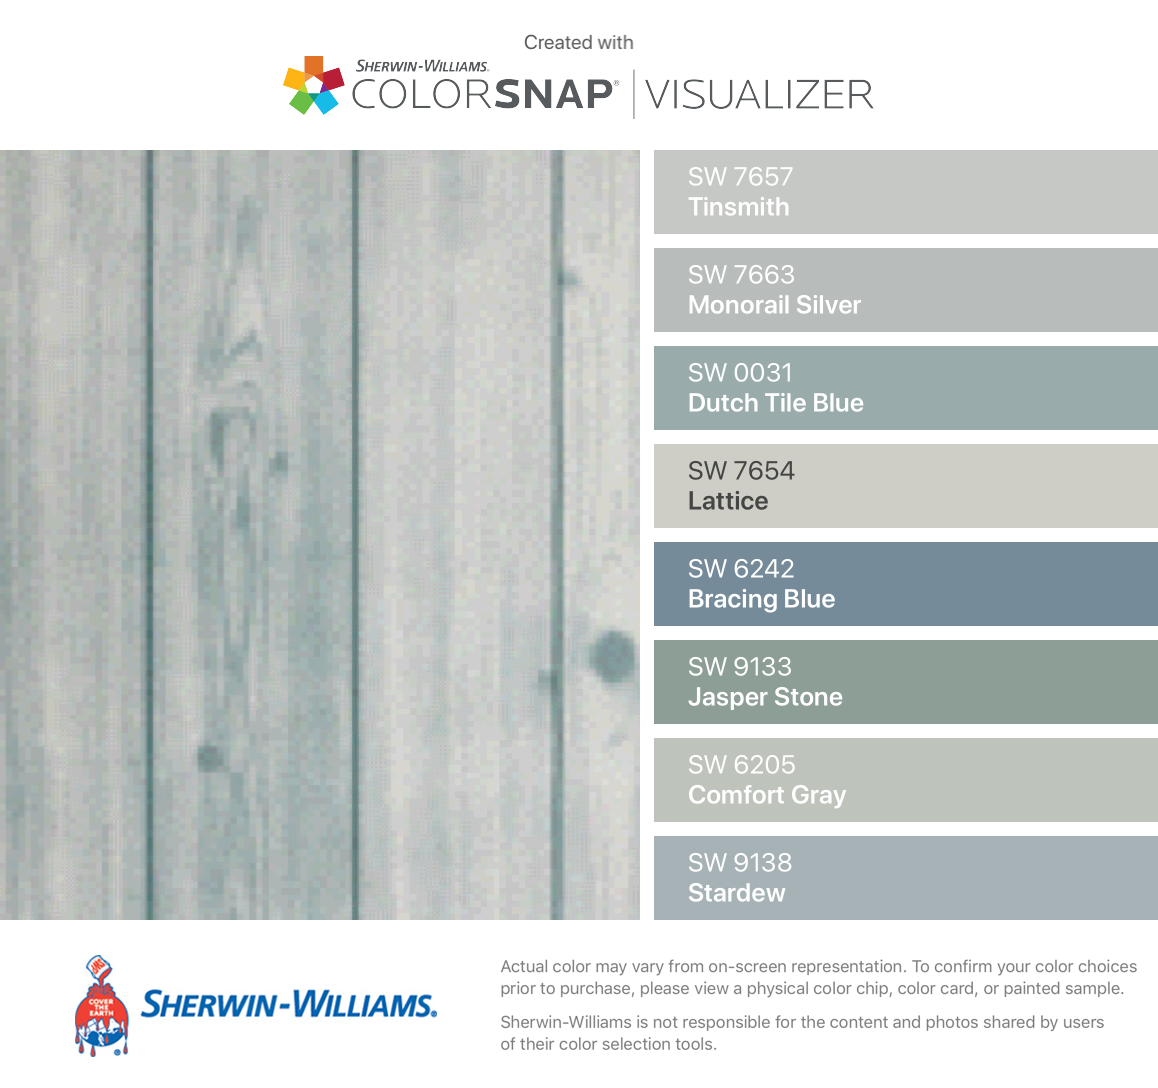 Sicohome Peel And Stick Wallpaper From Amazon Found These Colors With Colorsnap Visualizer F Sherwin Williams Paint Colors Dutch Tiles Paint Colors For Home